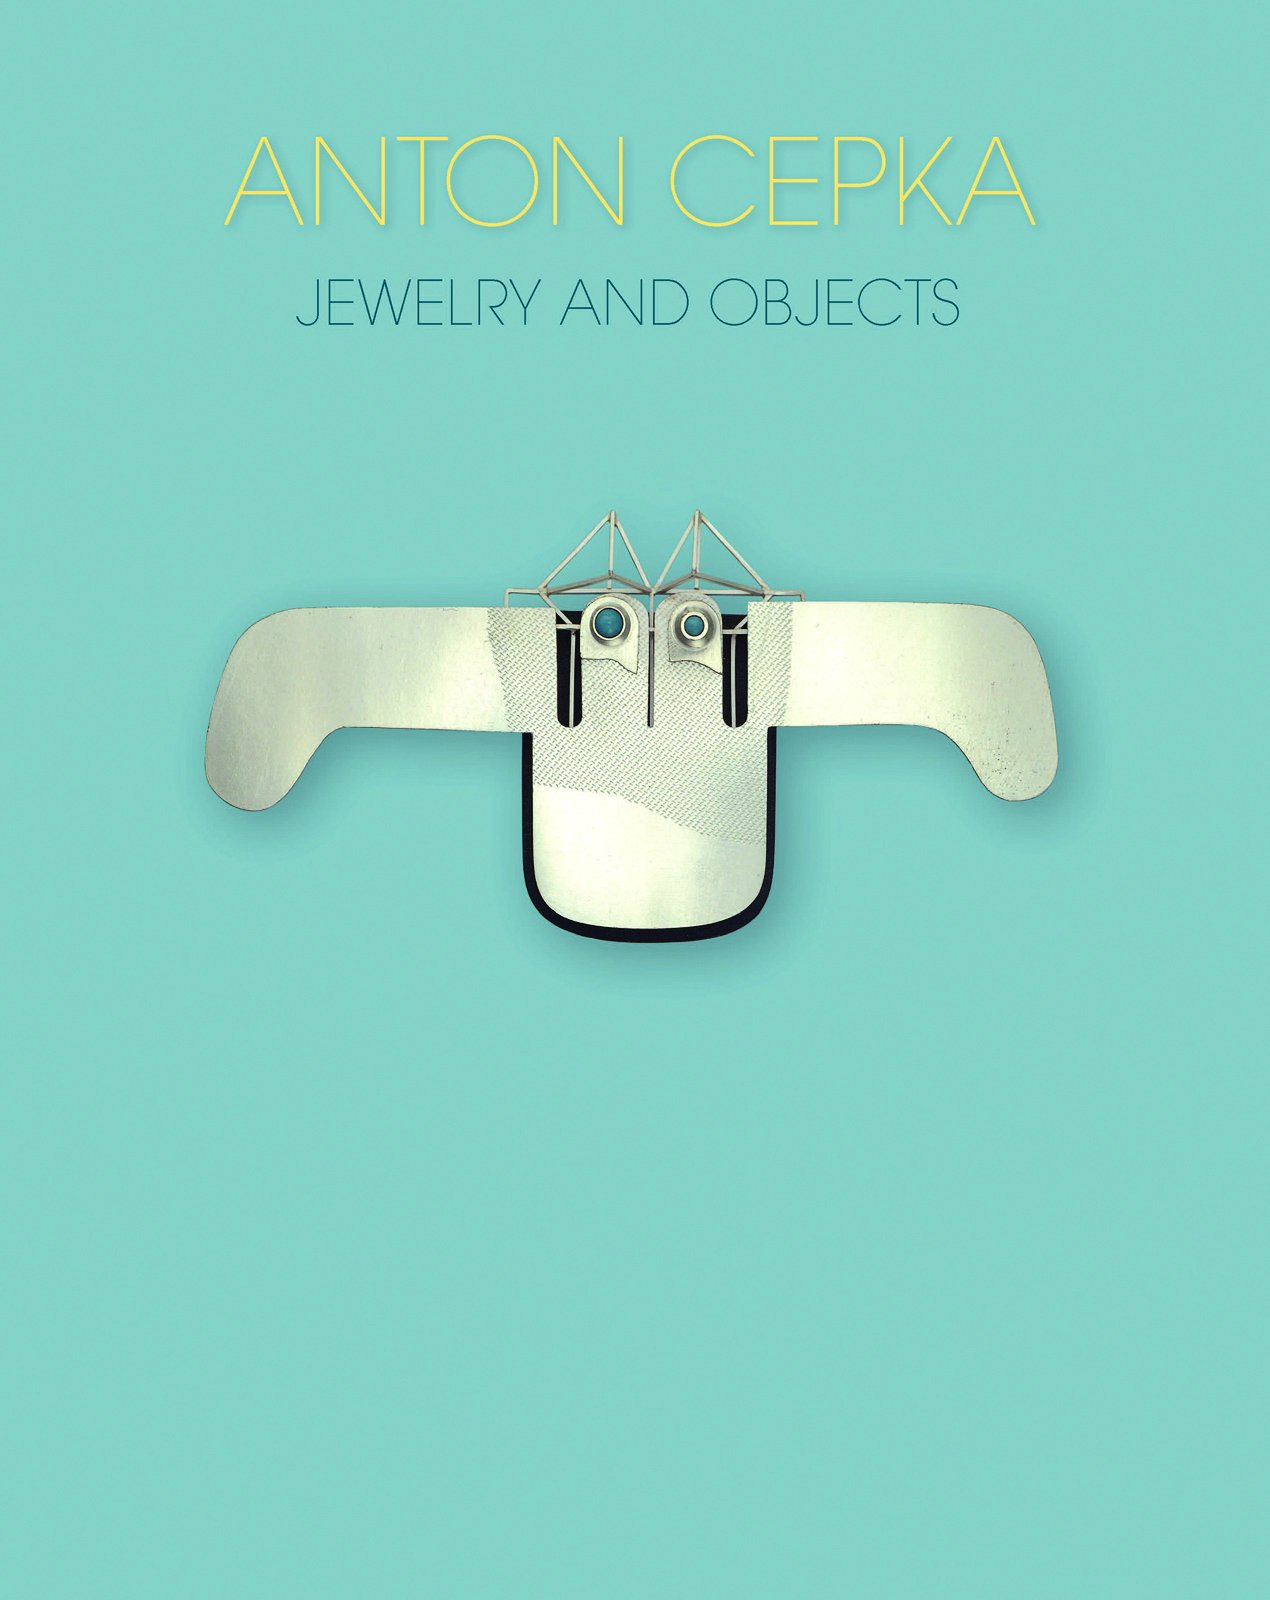 Anton Cepka - Jewelry and Objects